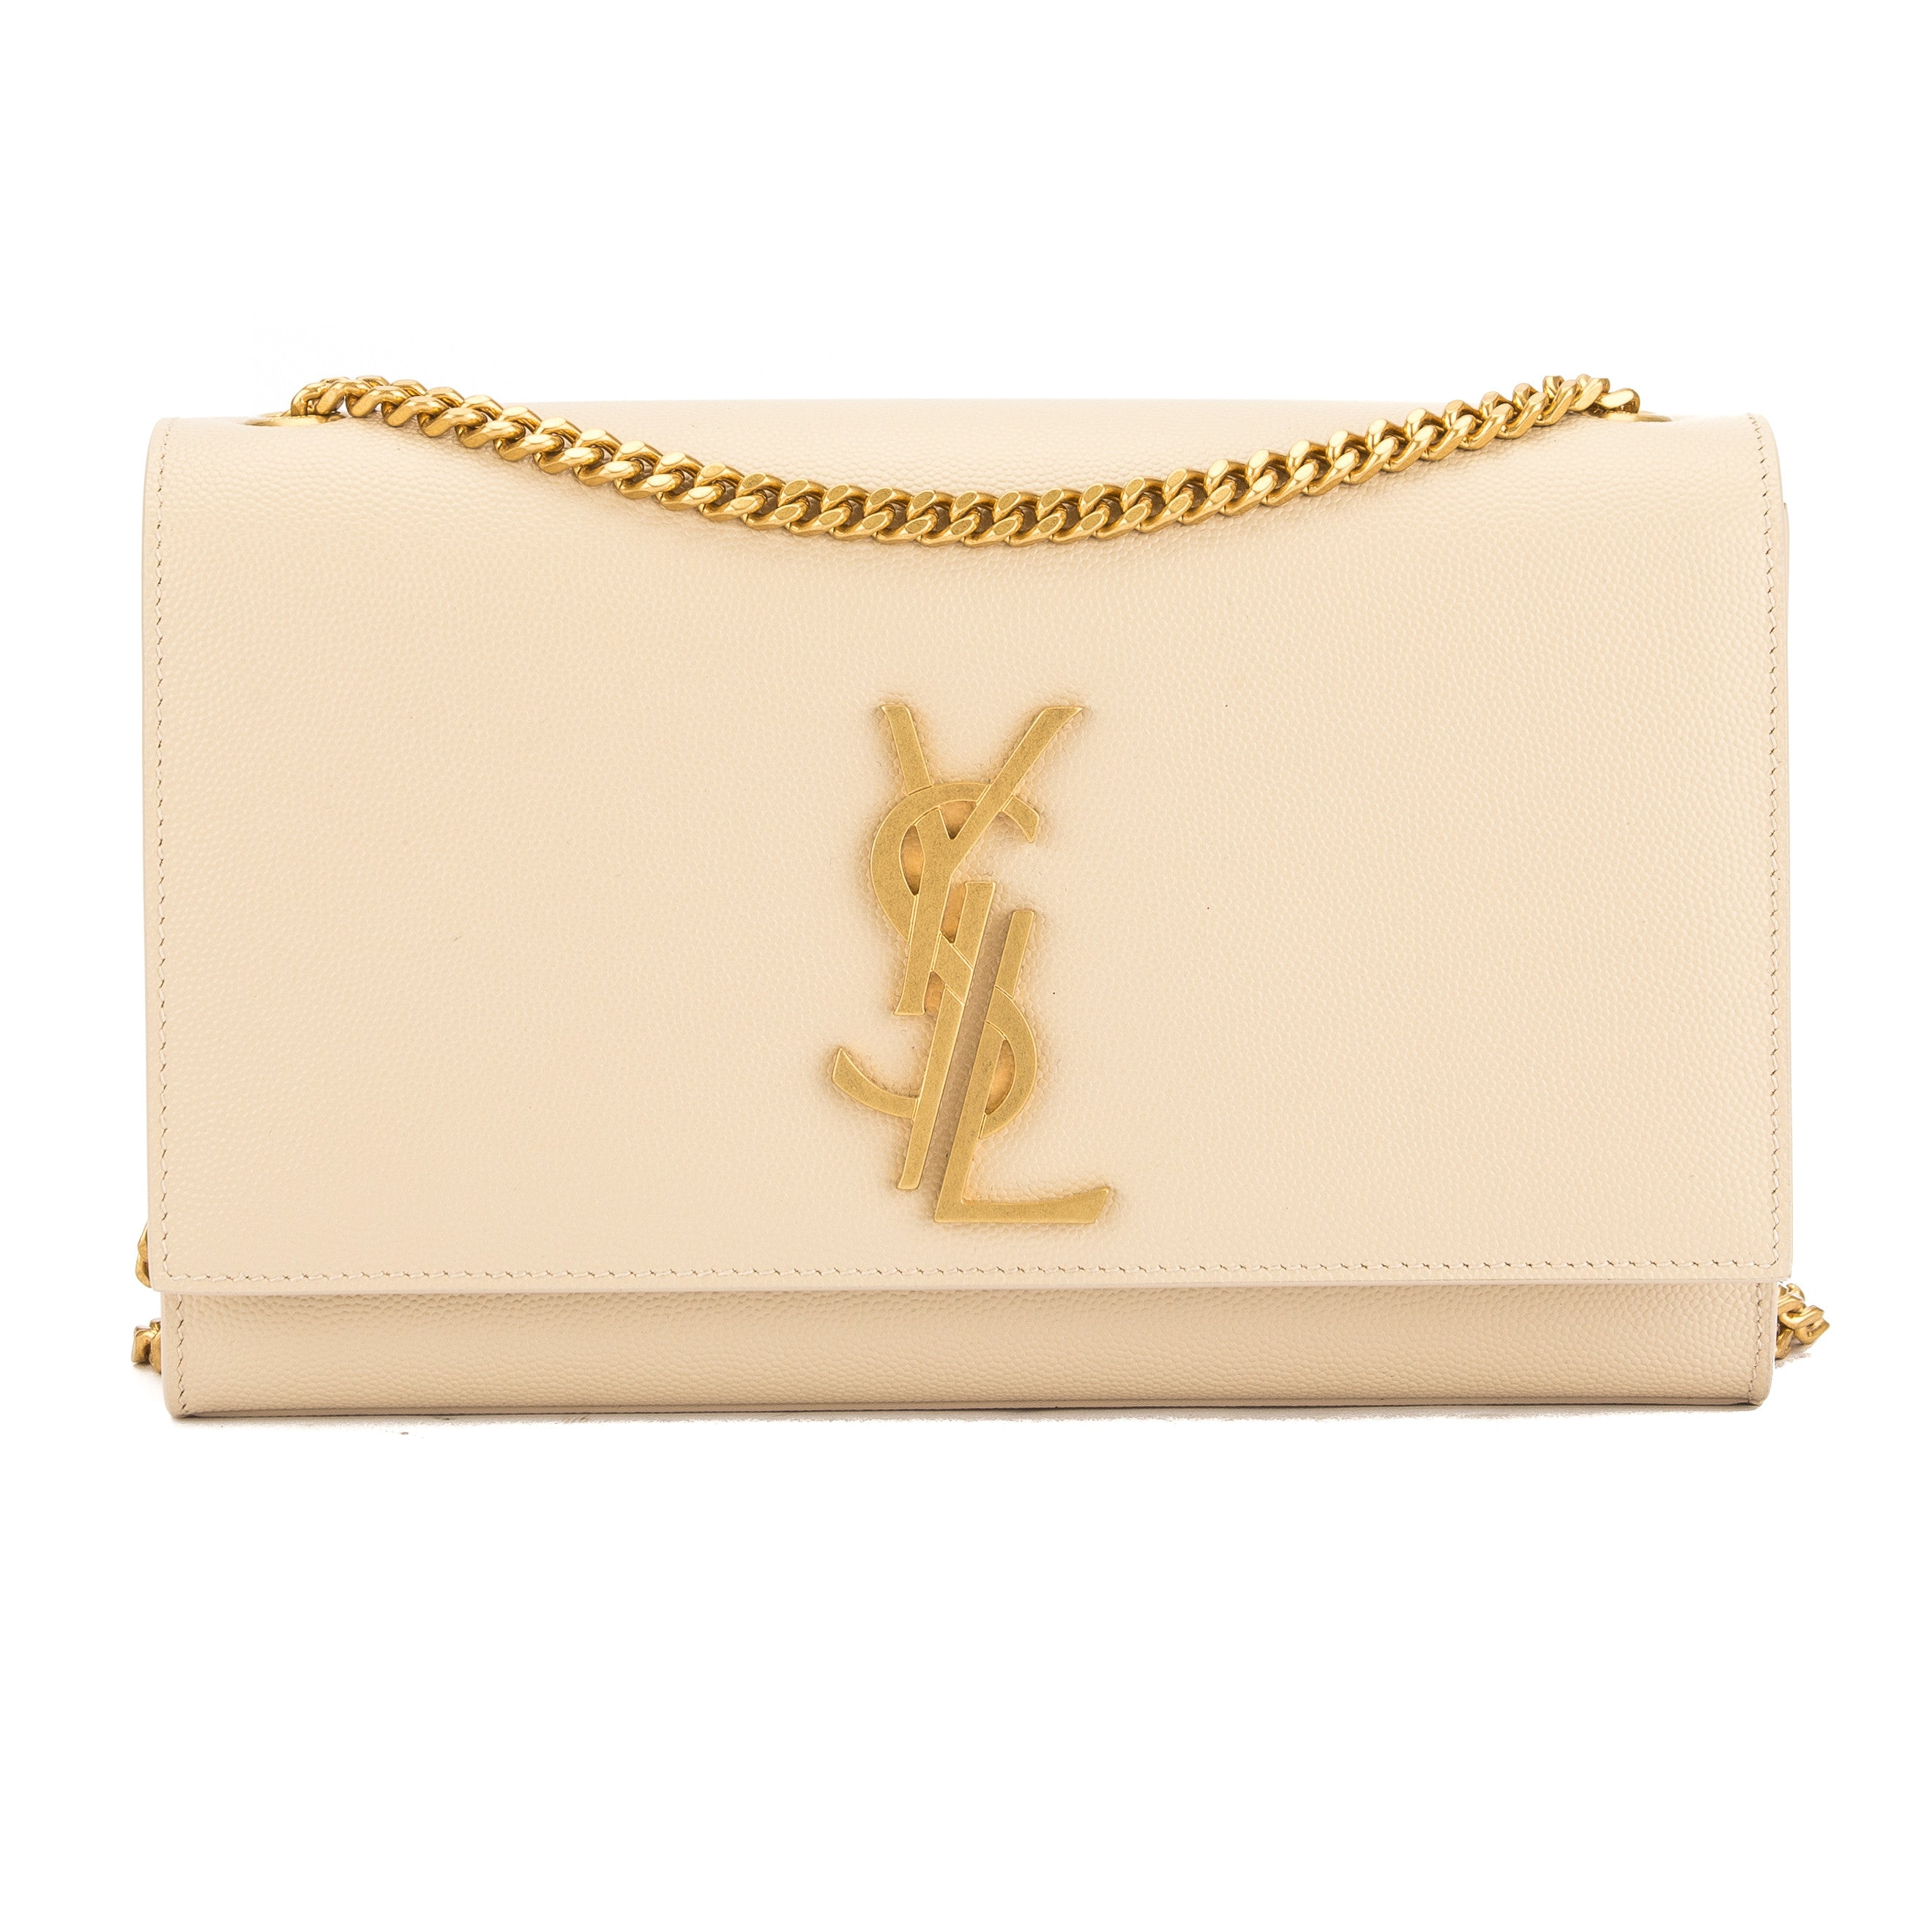 67188f661a13 Yves Saint Laurent Saint Laurent Dove White Grained Leather Classic Medium  Kate Monogram Bag New with Tags